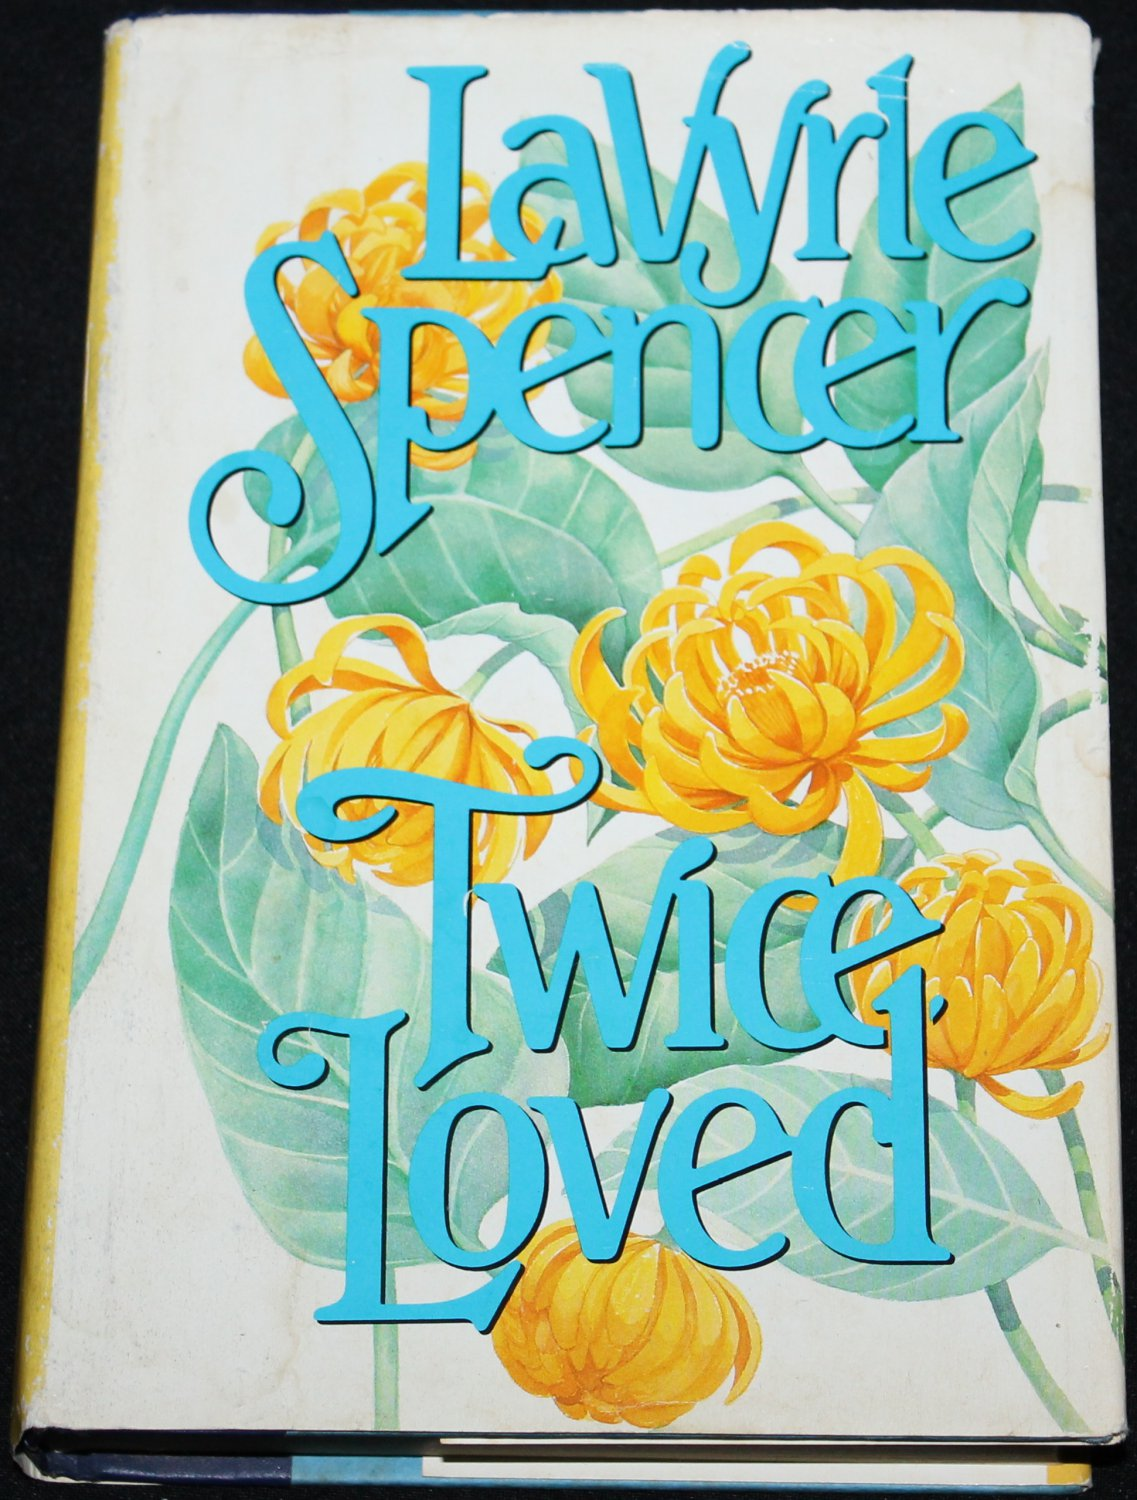 1984 Twice Loved romance hardcover book by LaVyrle Spencer